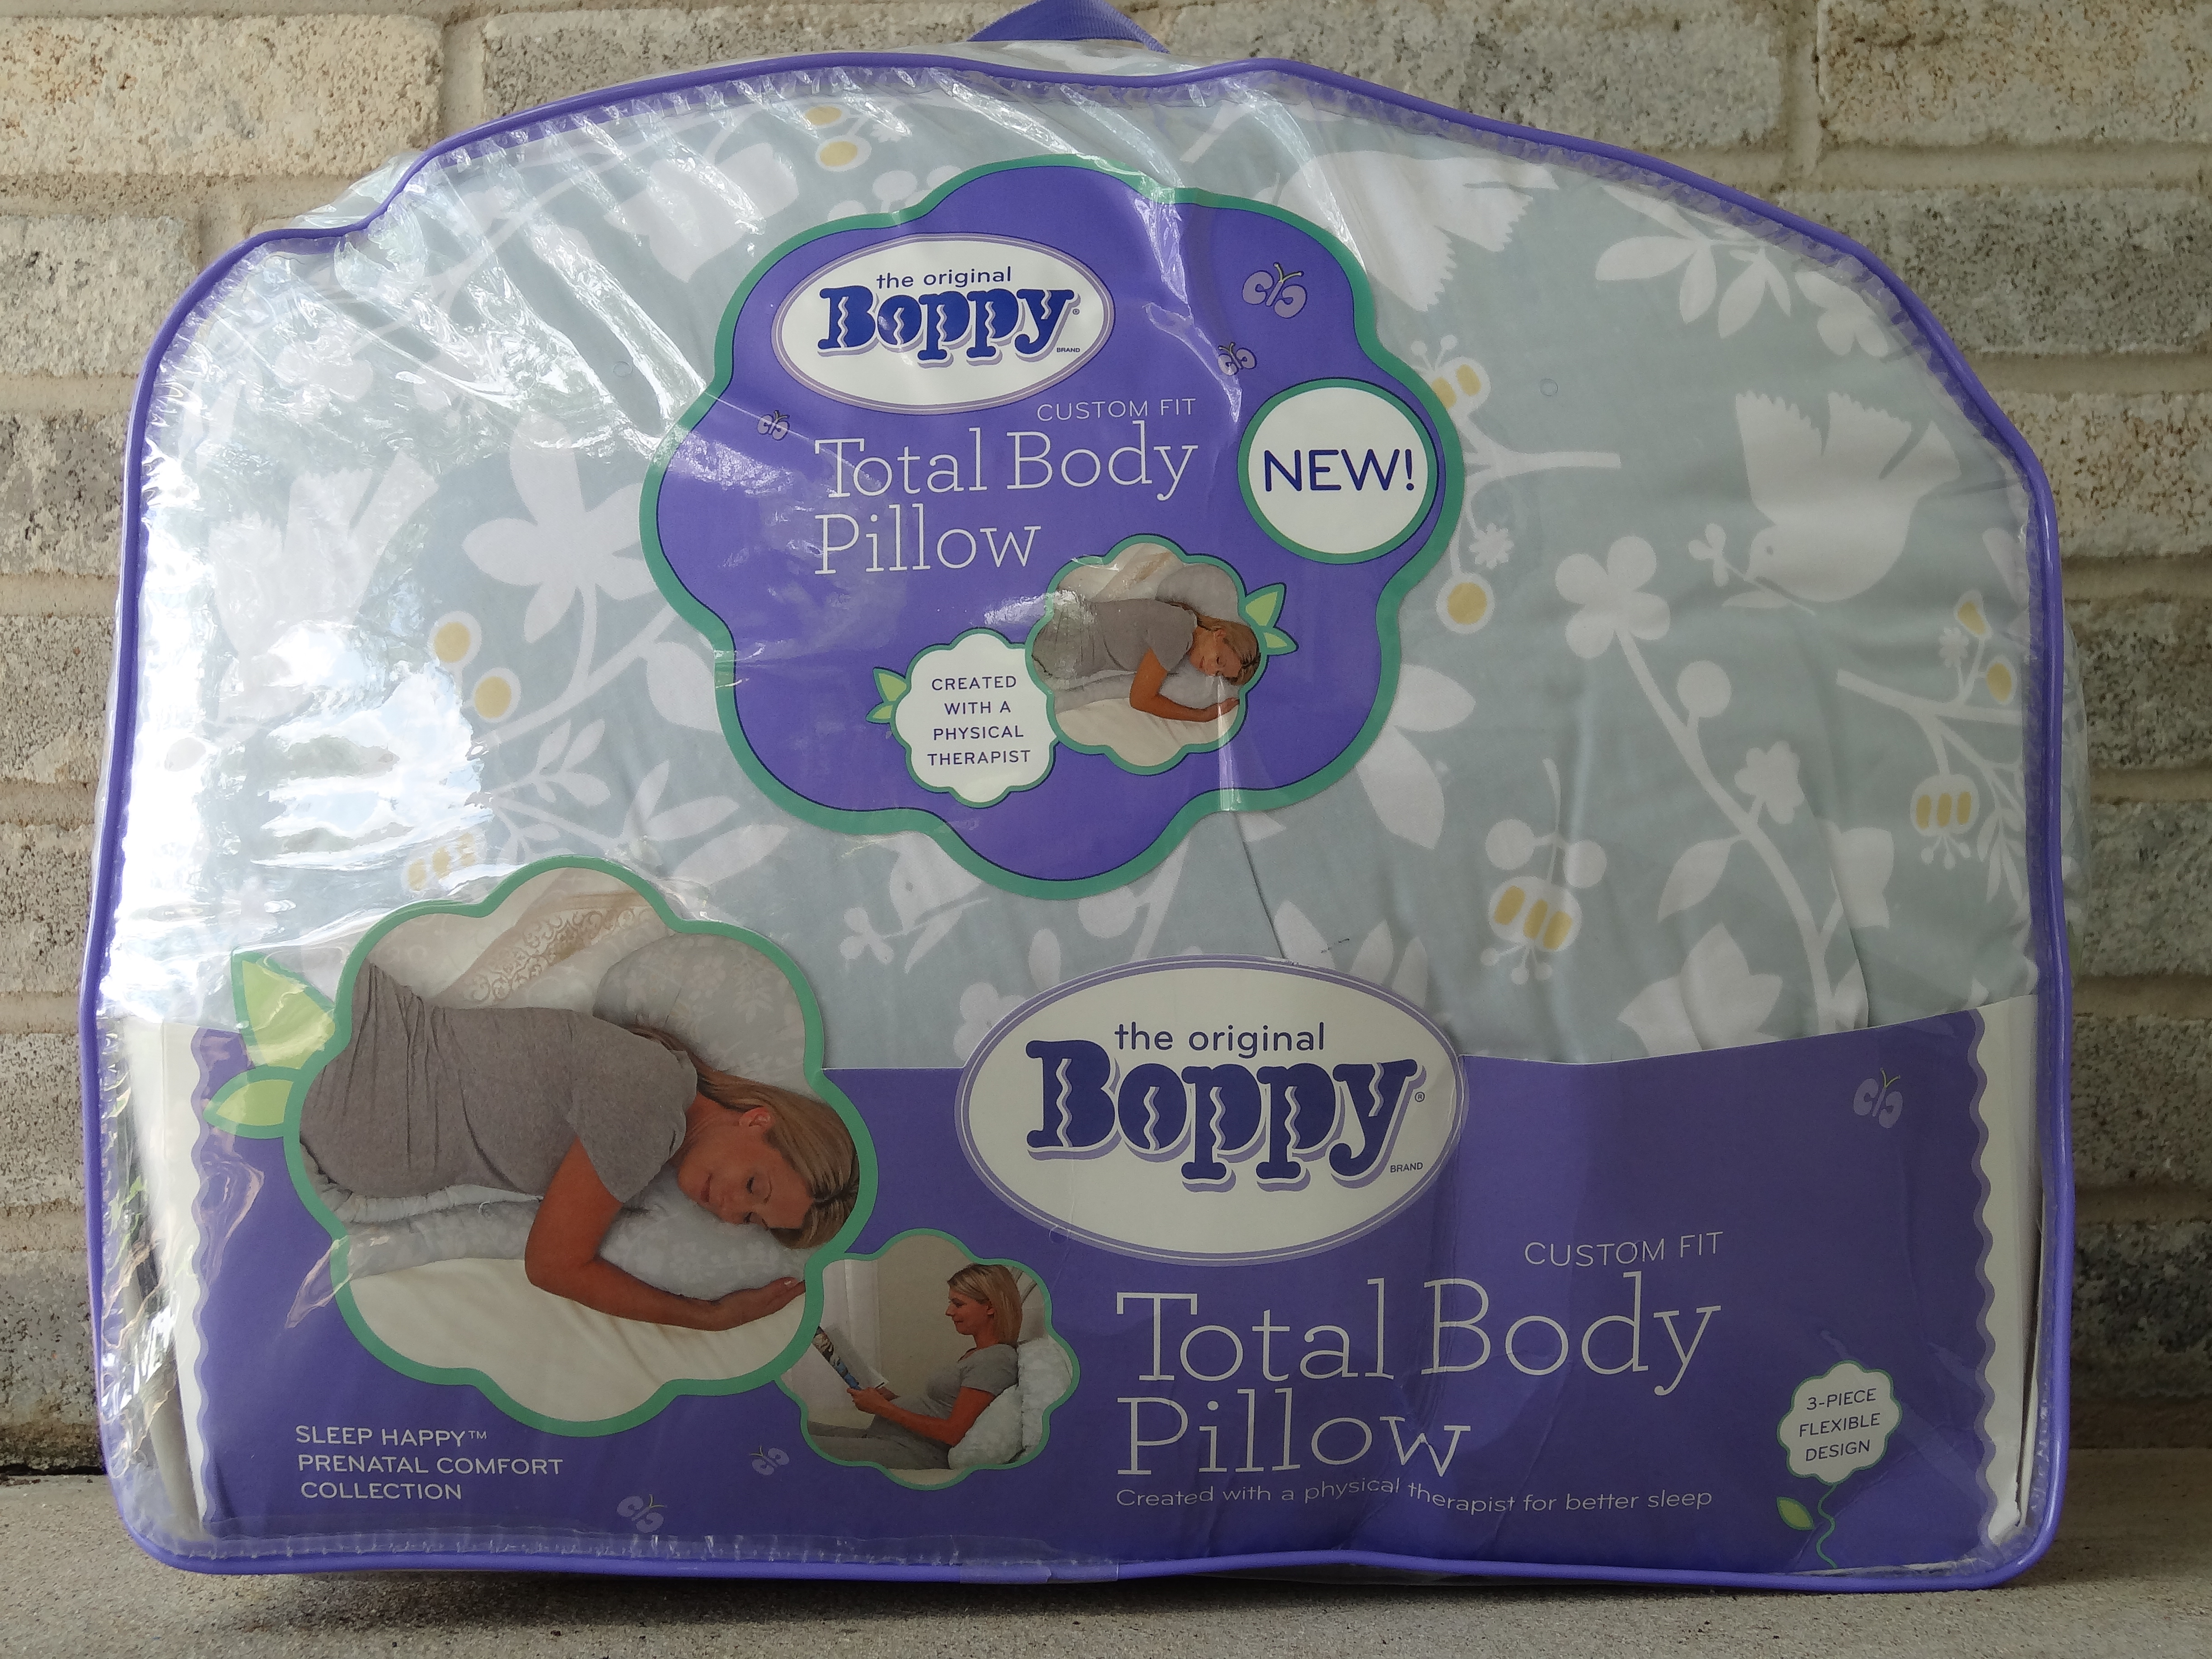 New Custom Fit Total Body Pillow By Boppy Lotus Be Barefoot